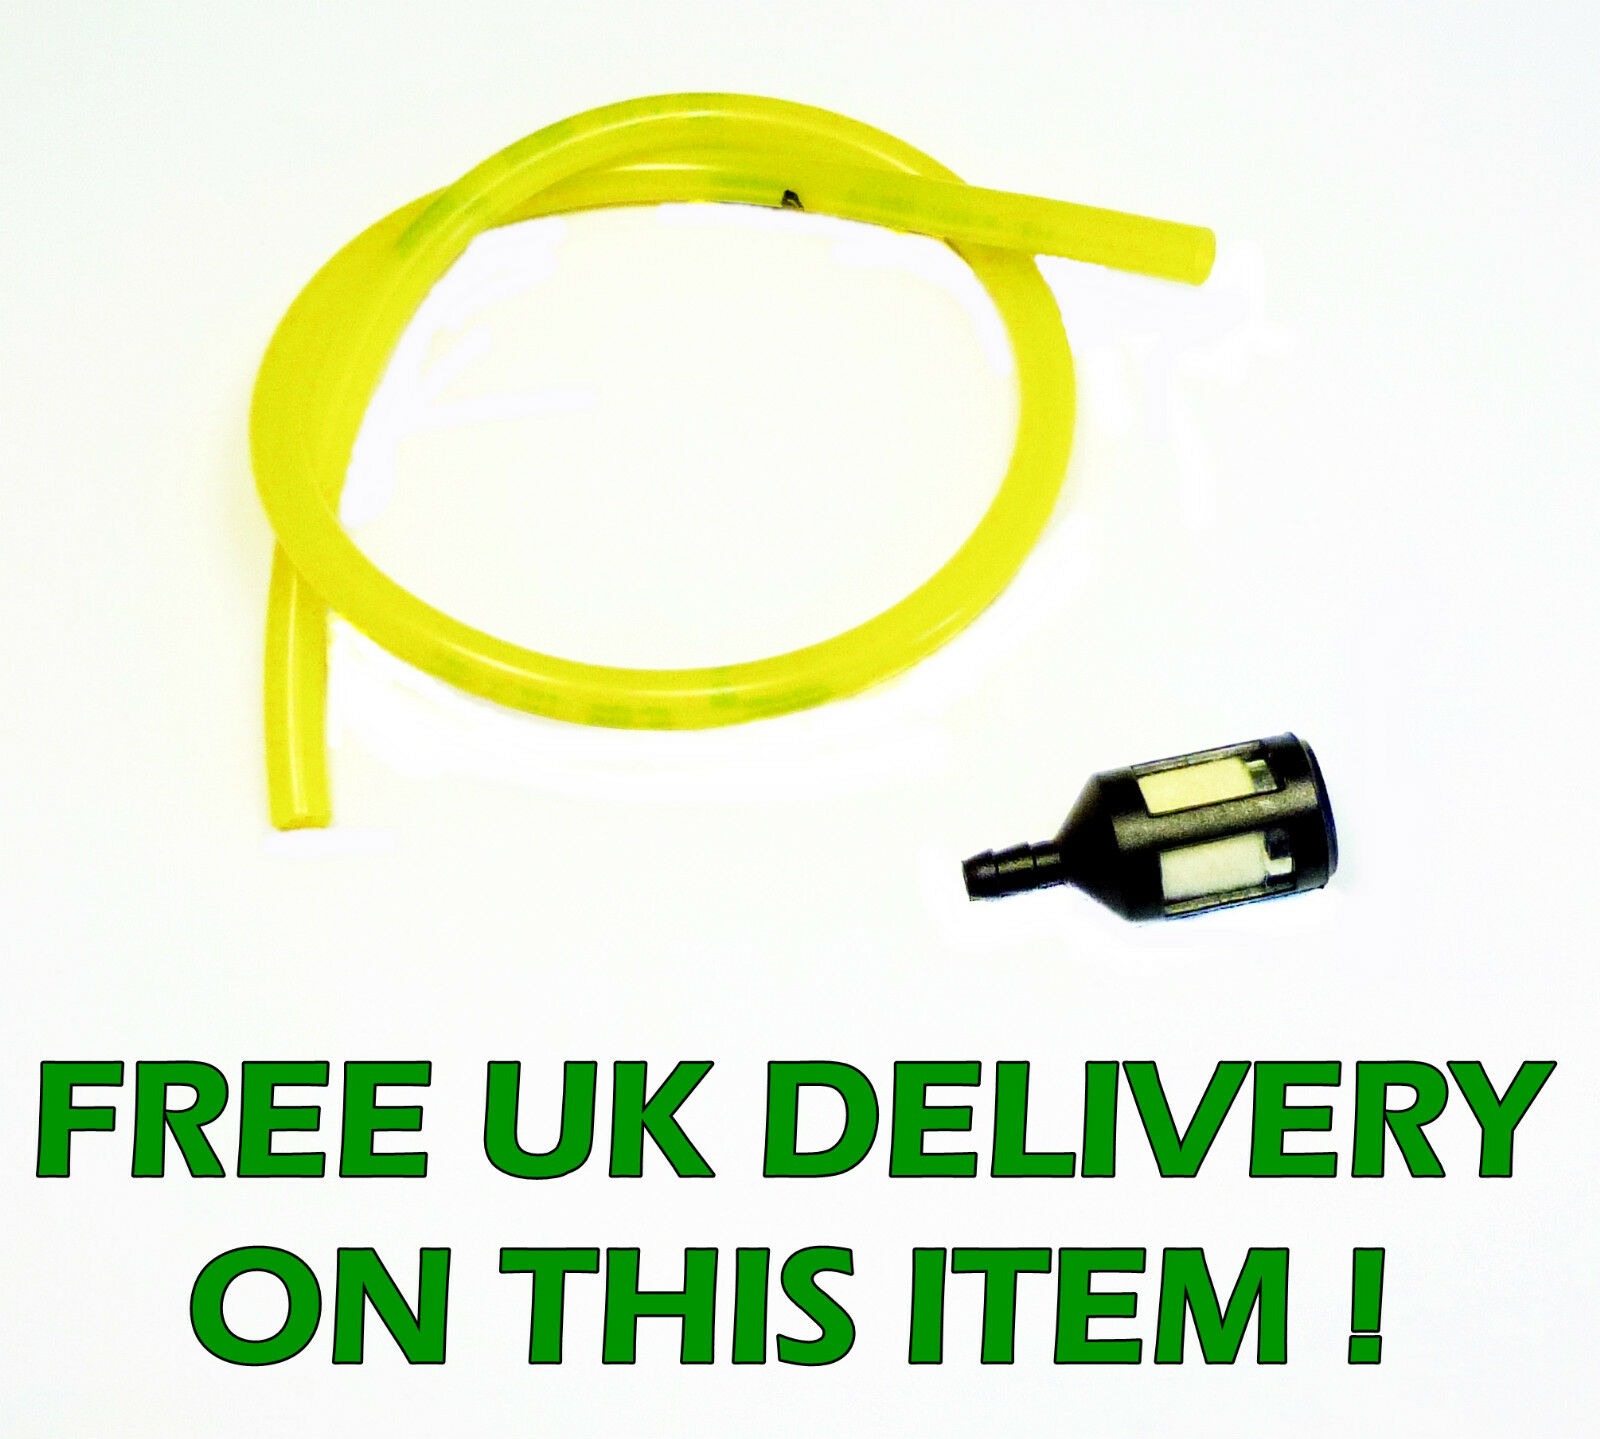 Mcculloch Cabrio 243 244 245 246 249 Fuel Line Pipe Filter Kit 1 Of 1free Shipping